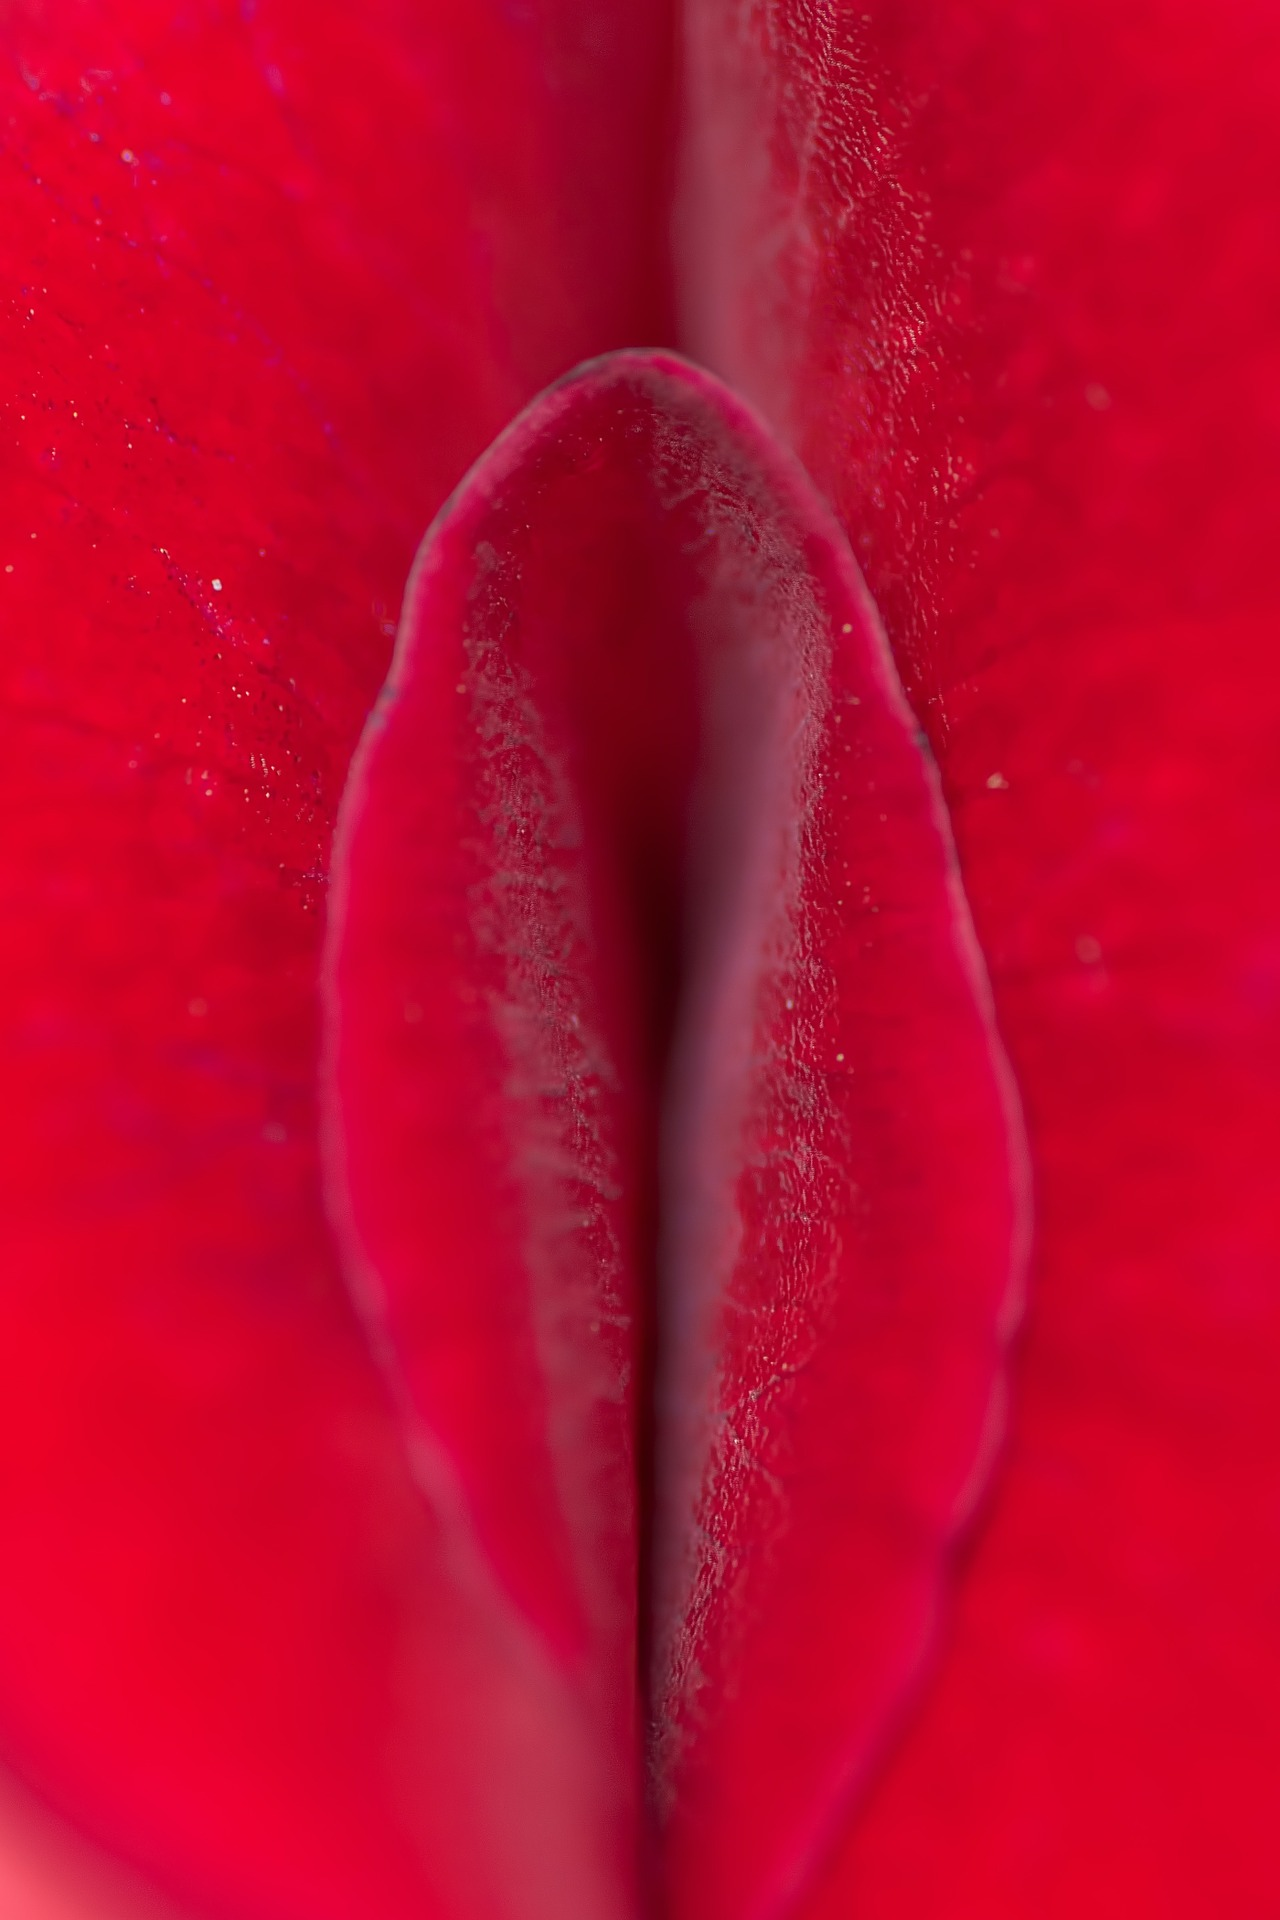 Red- rose- sexual-hygiene